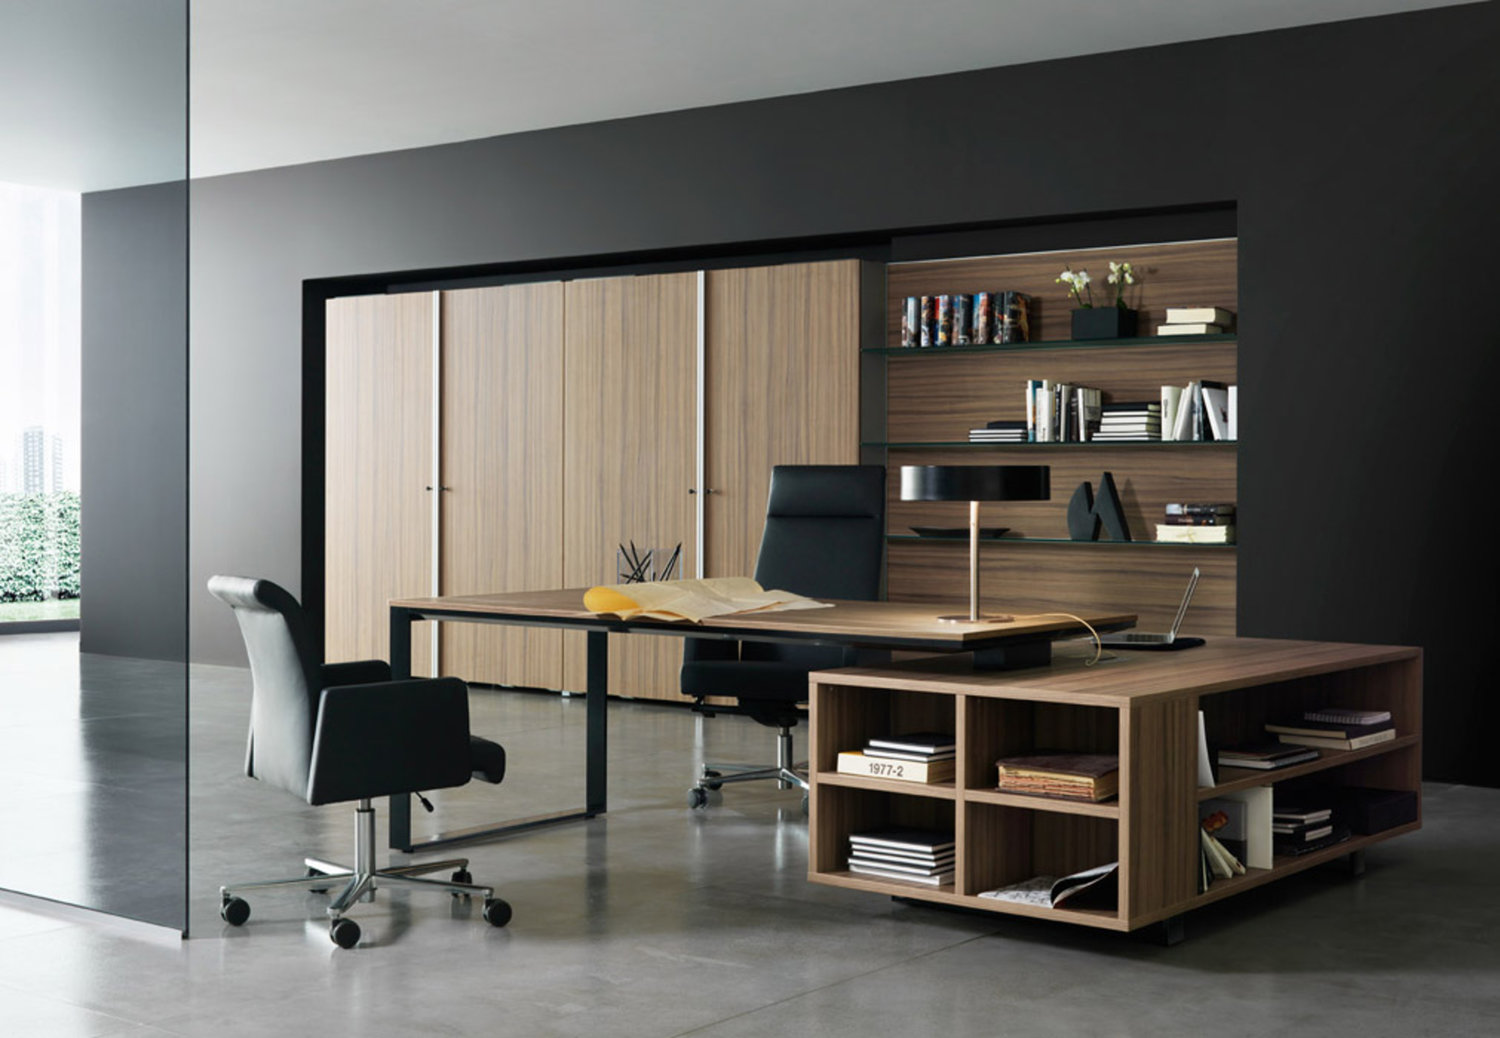 office interior decor. The Perfect Workplace: Tips For Office Interior Design Decor